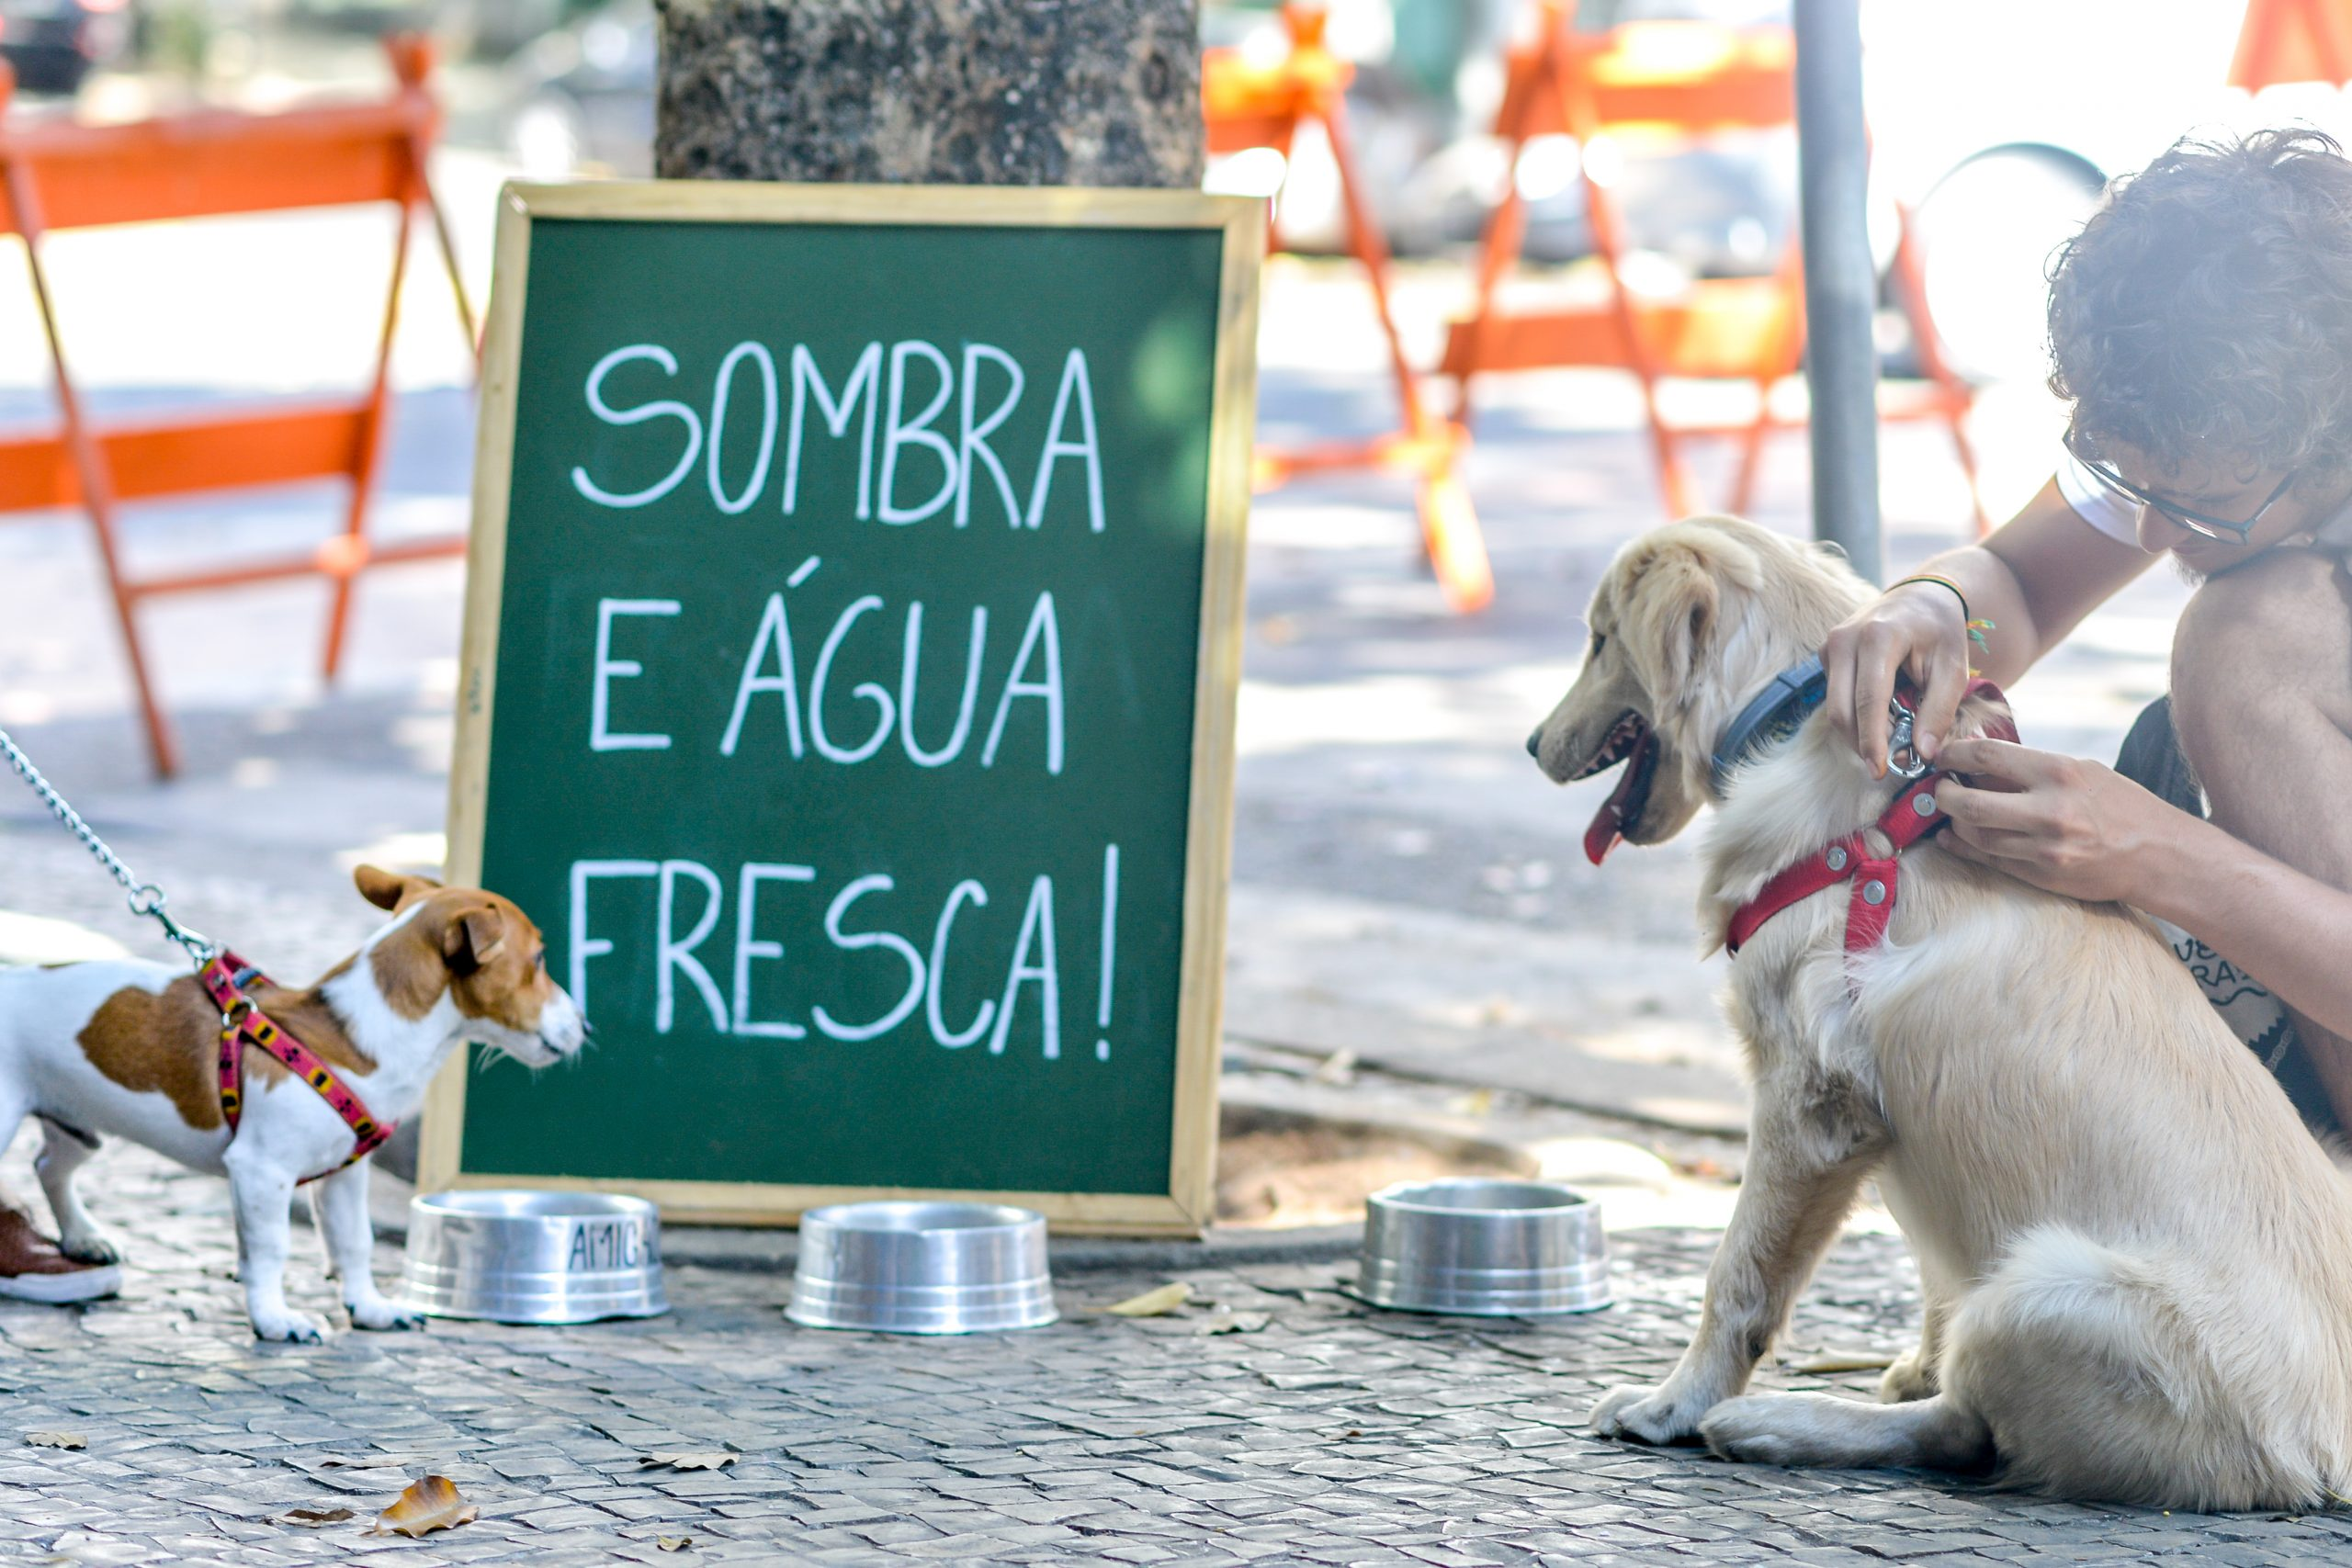 Feira Fresca Pet Friendly